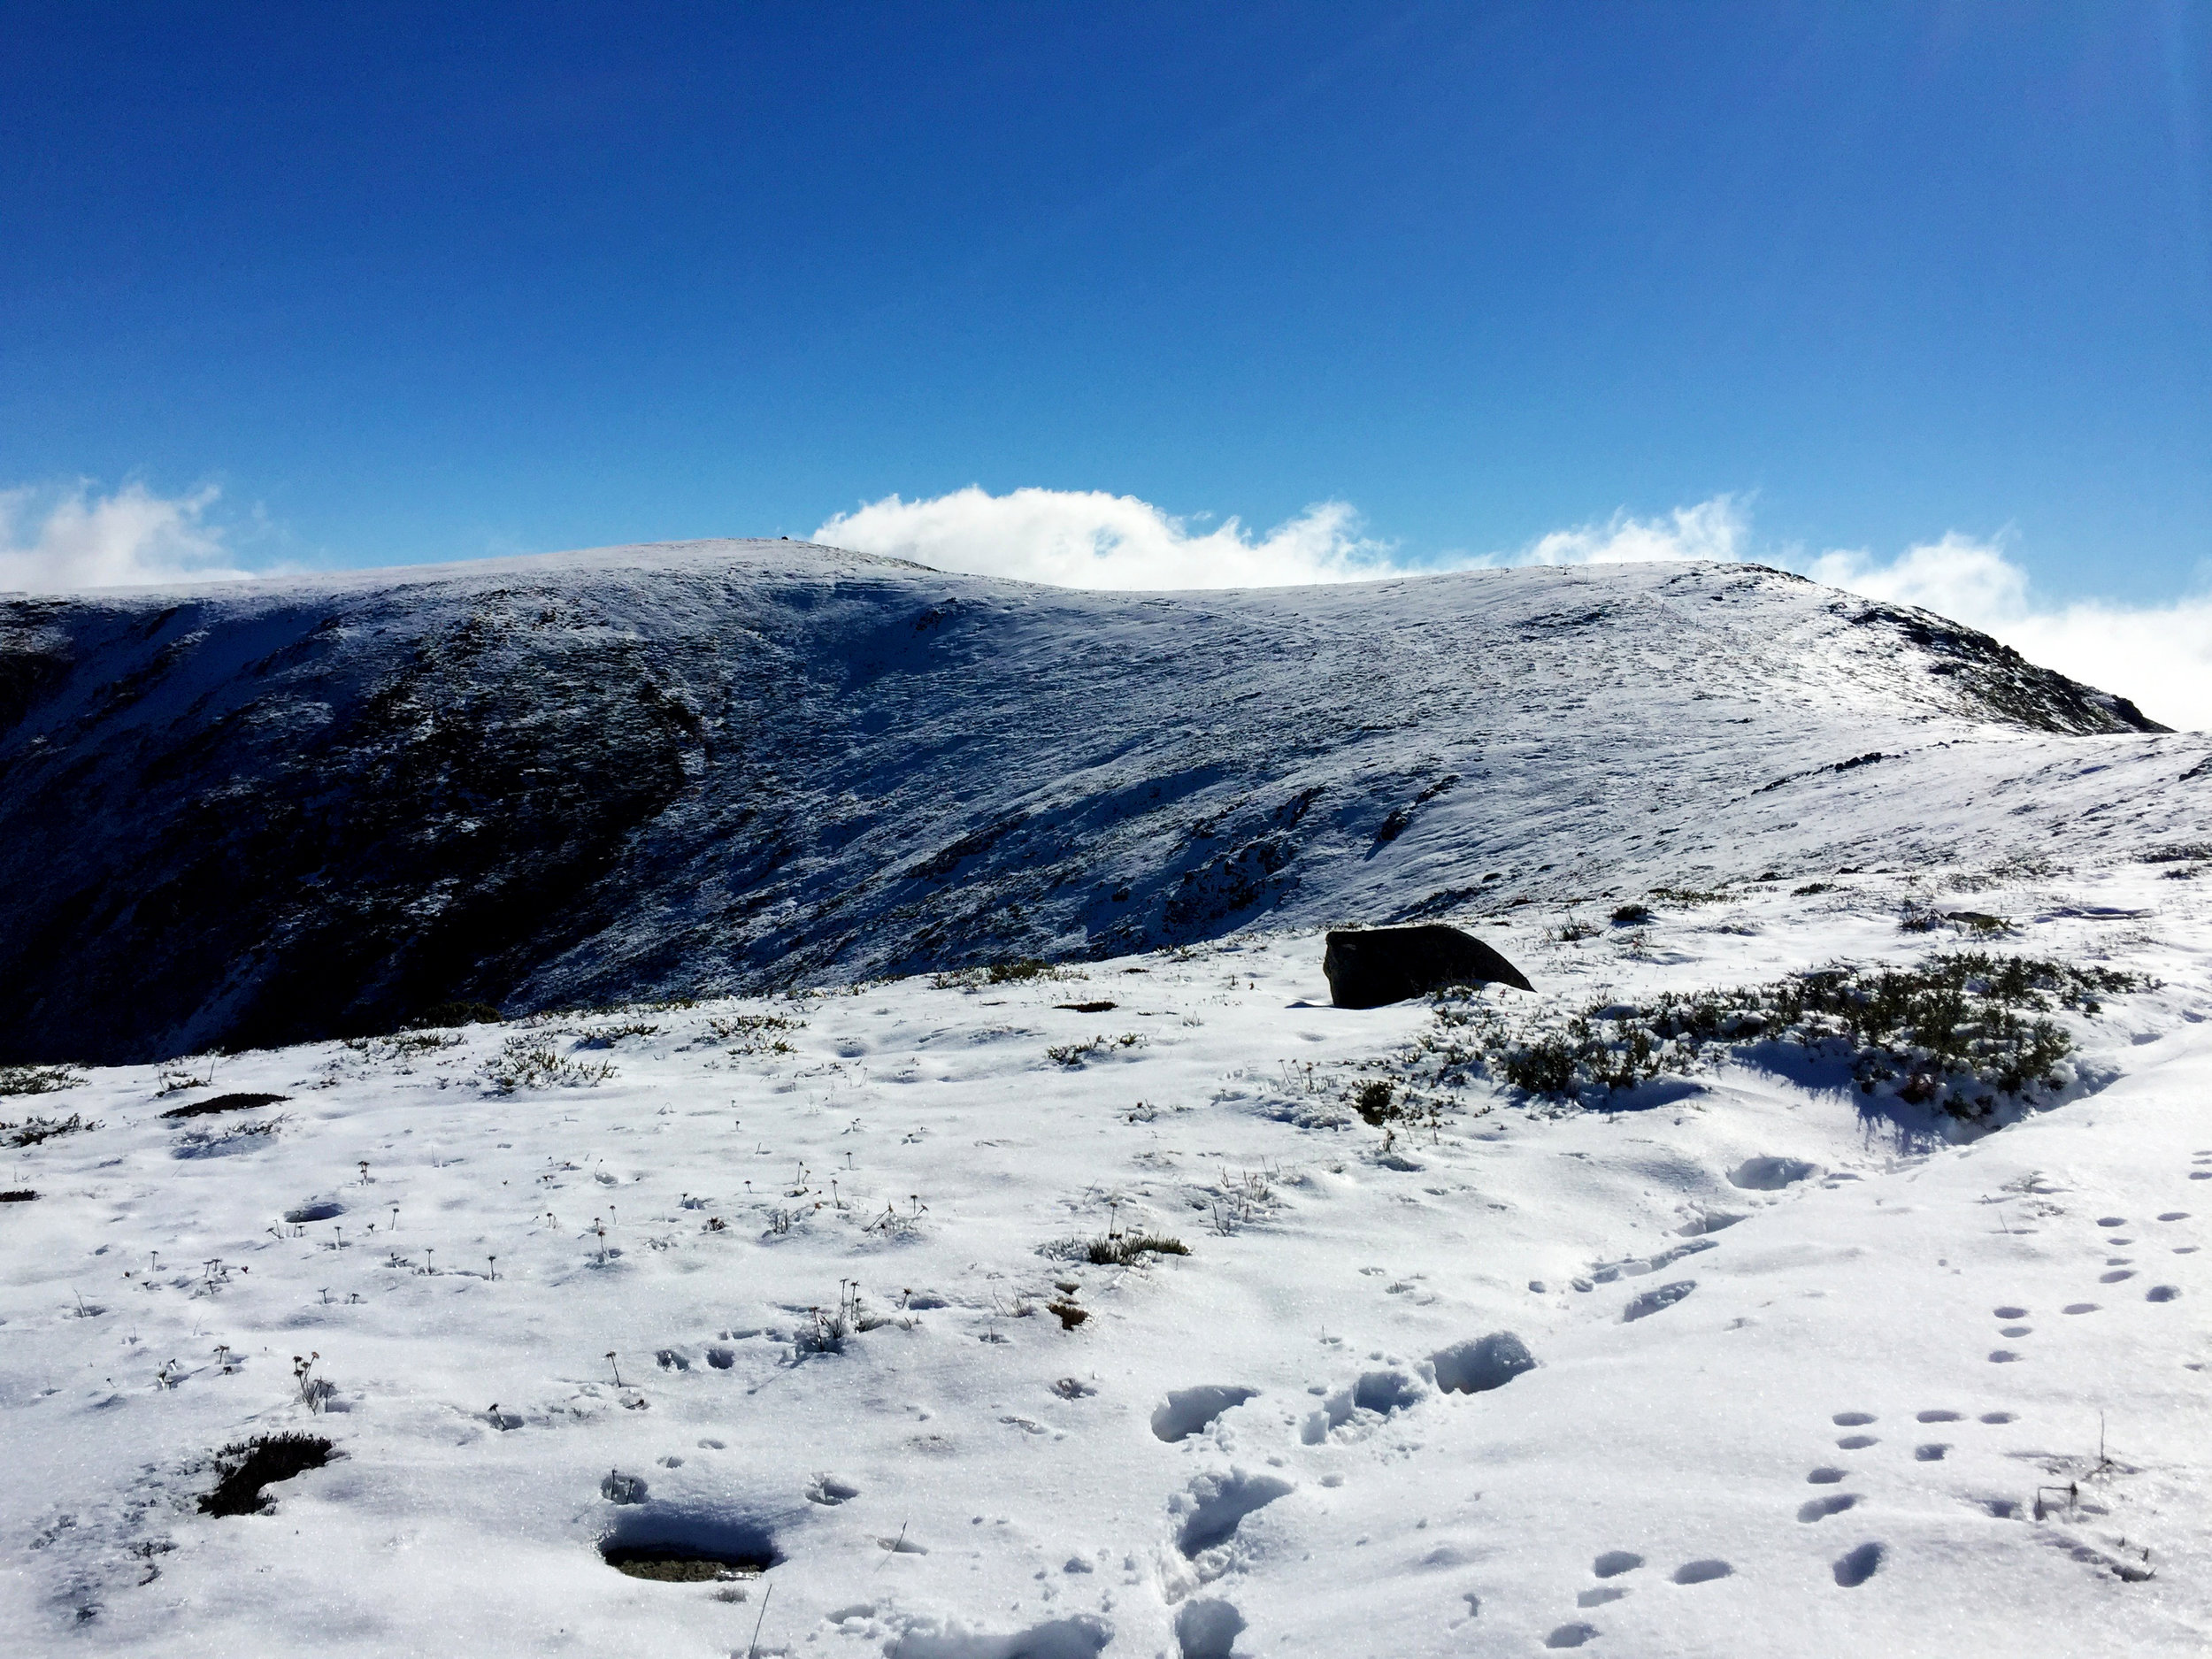 Mount Bogong with an early snow cover - snowfalls like this can occur at any time of year